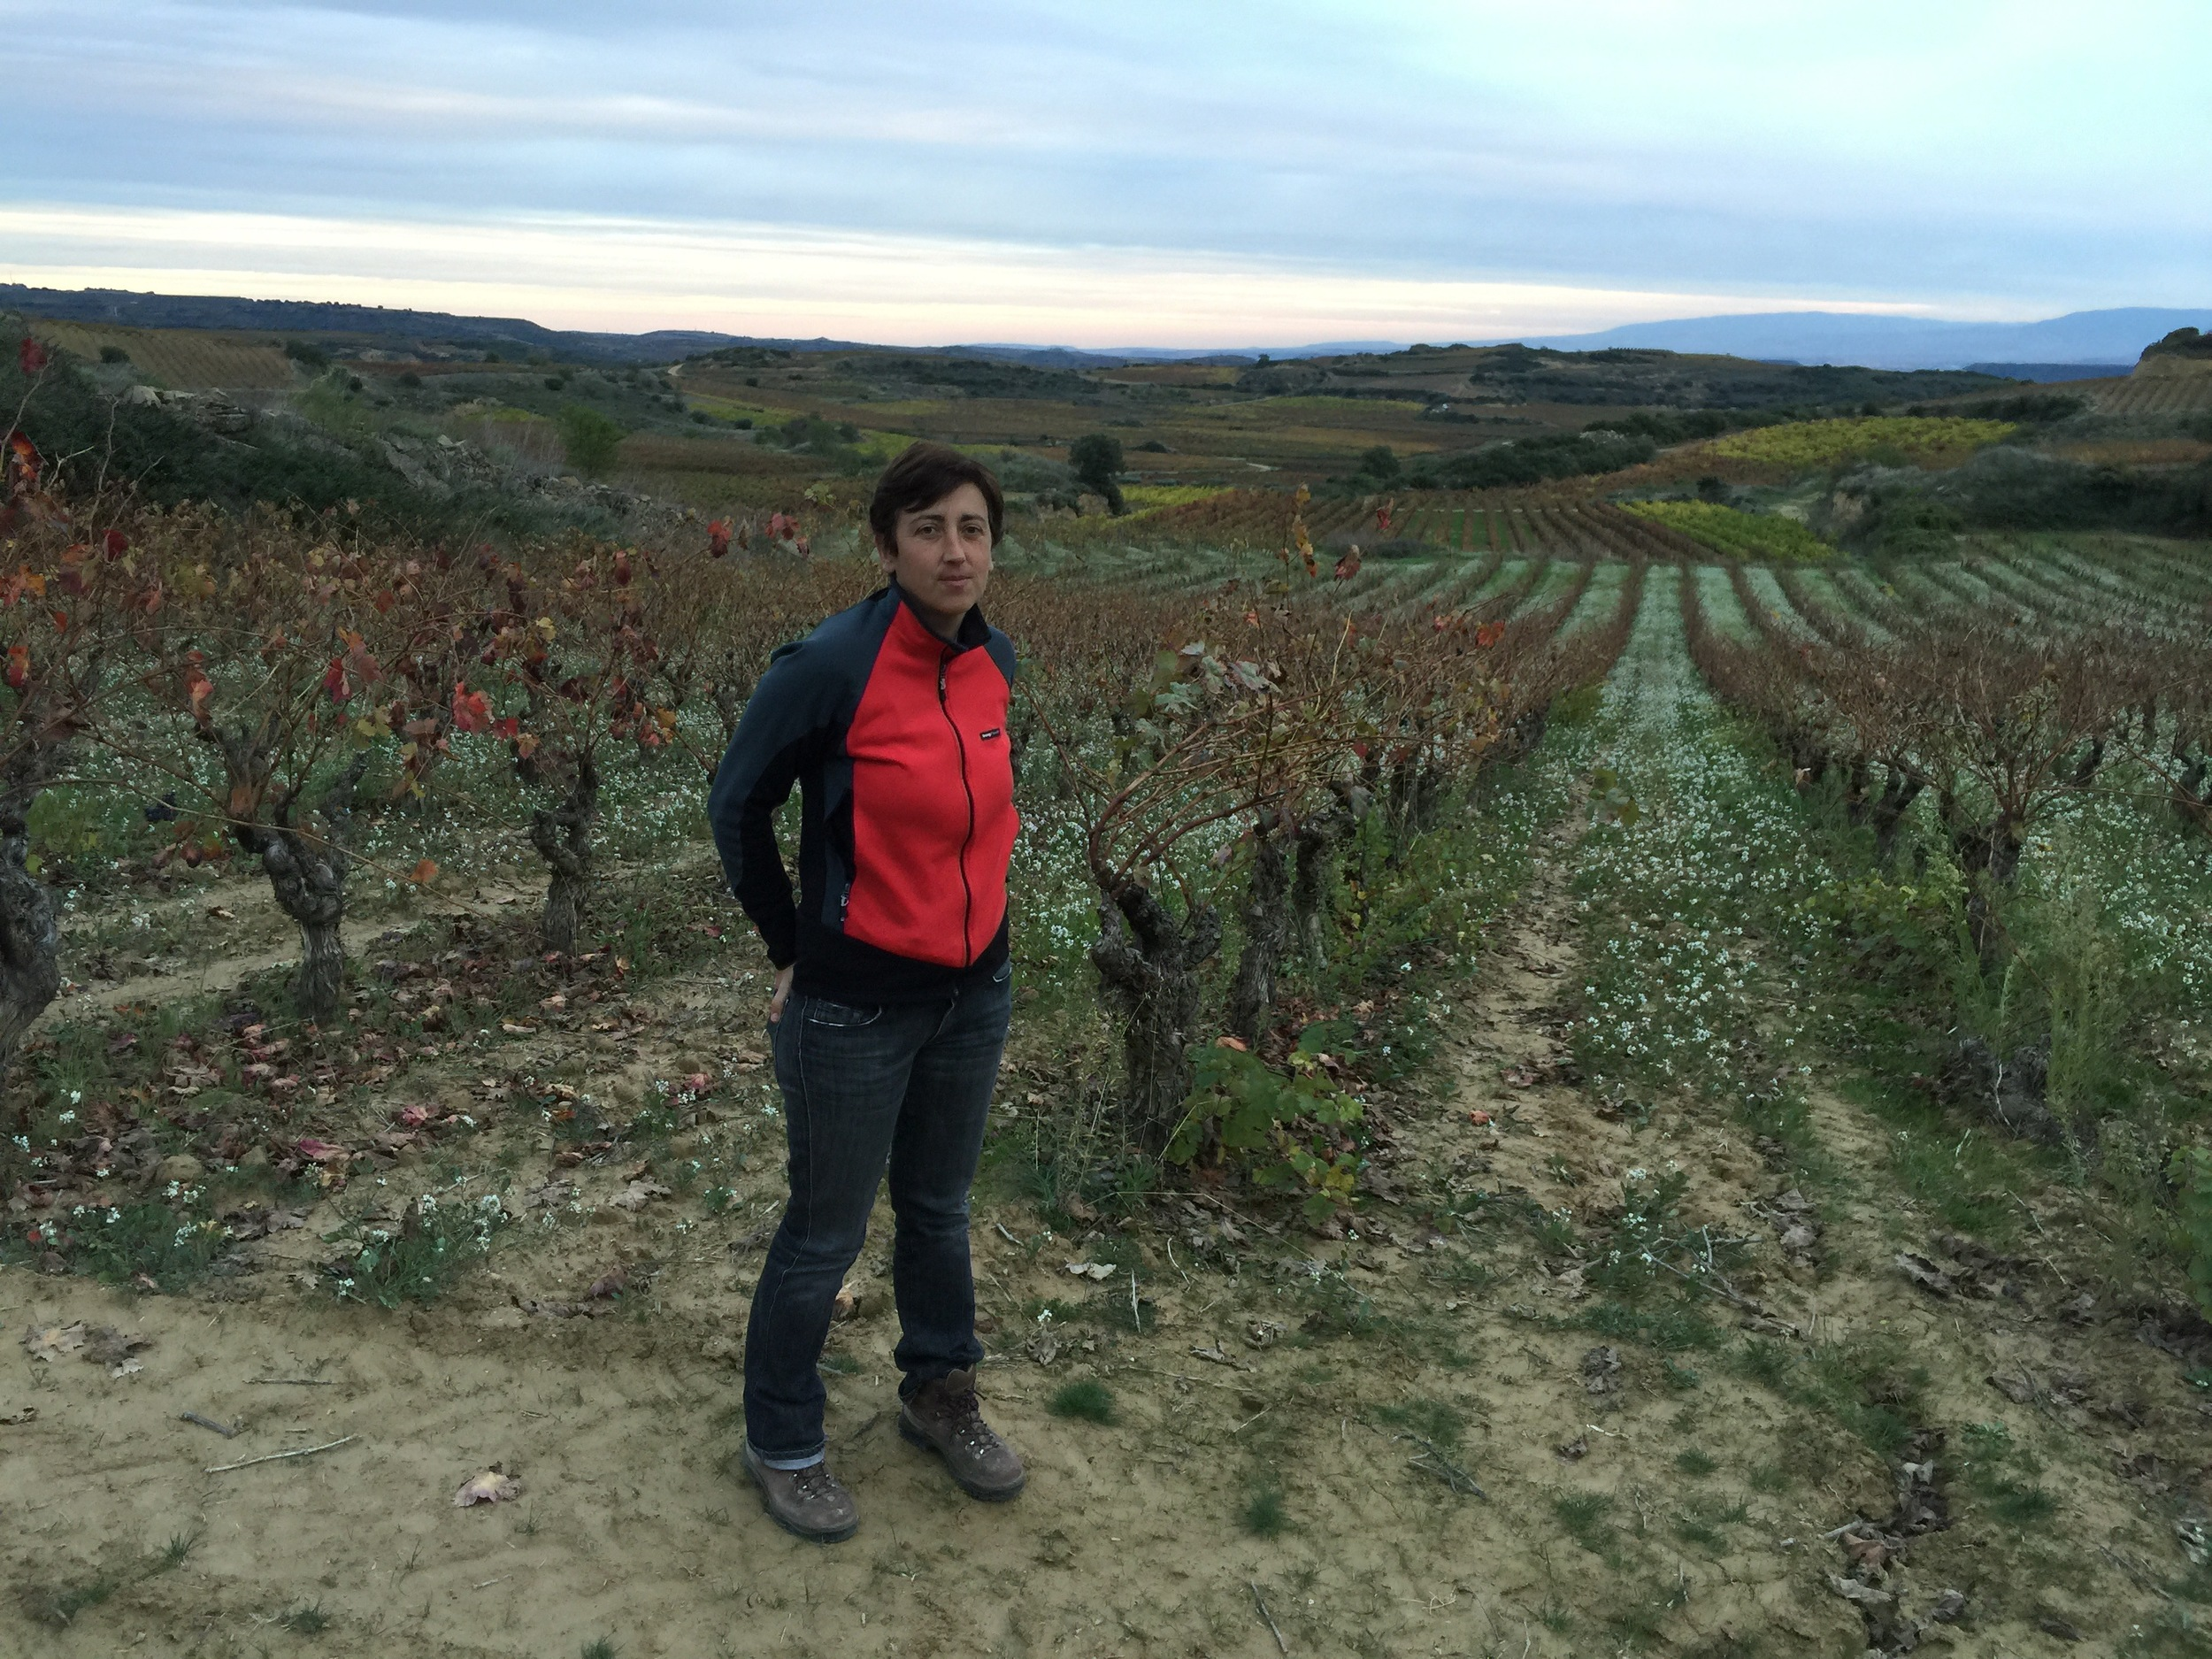 Eva, Winemaker